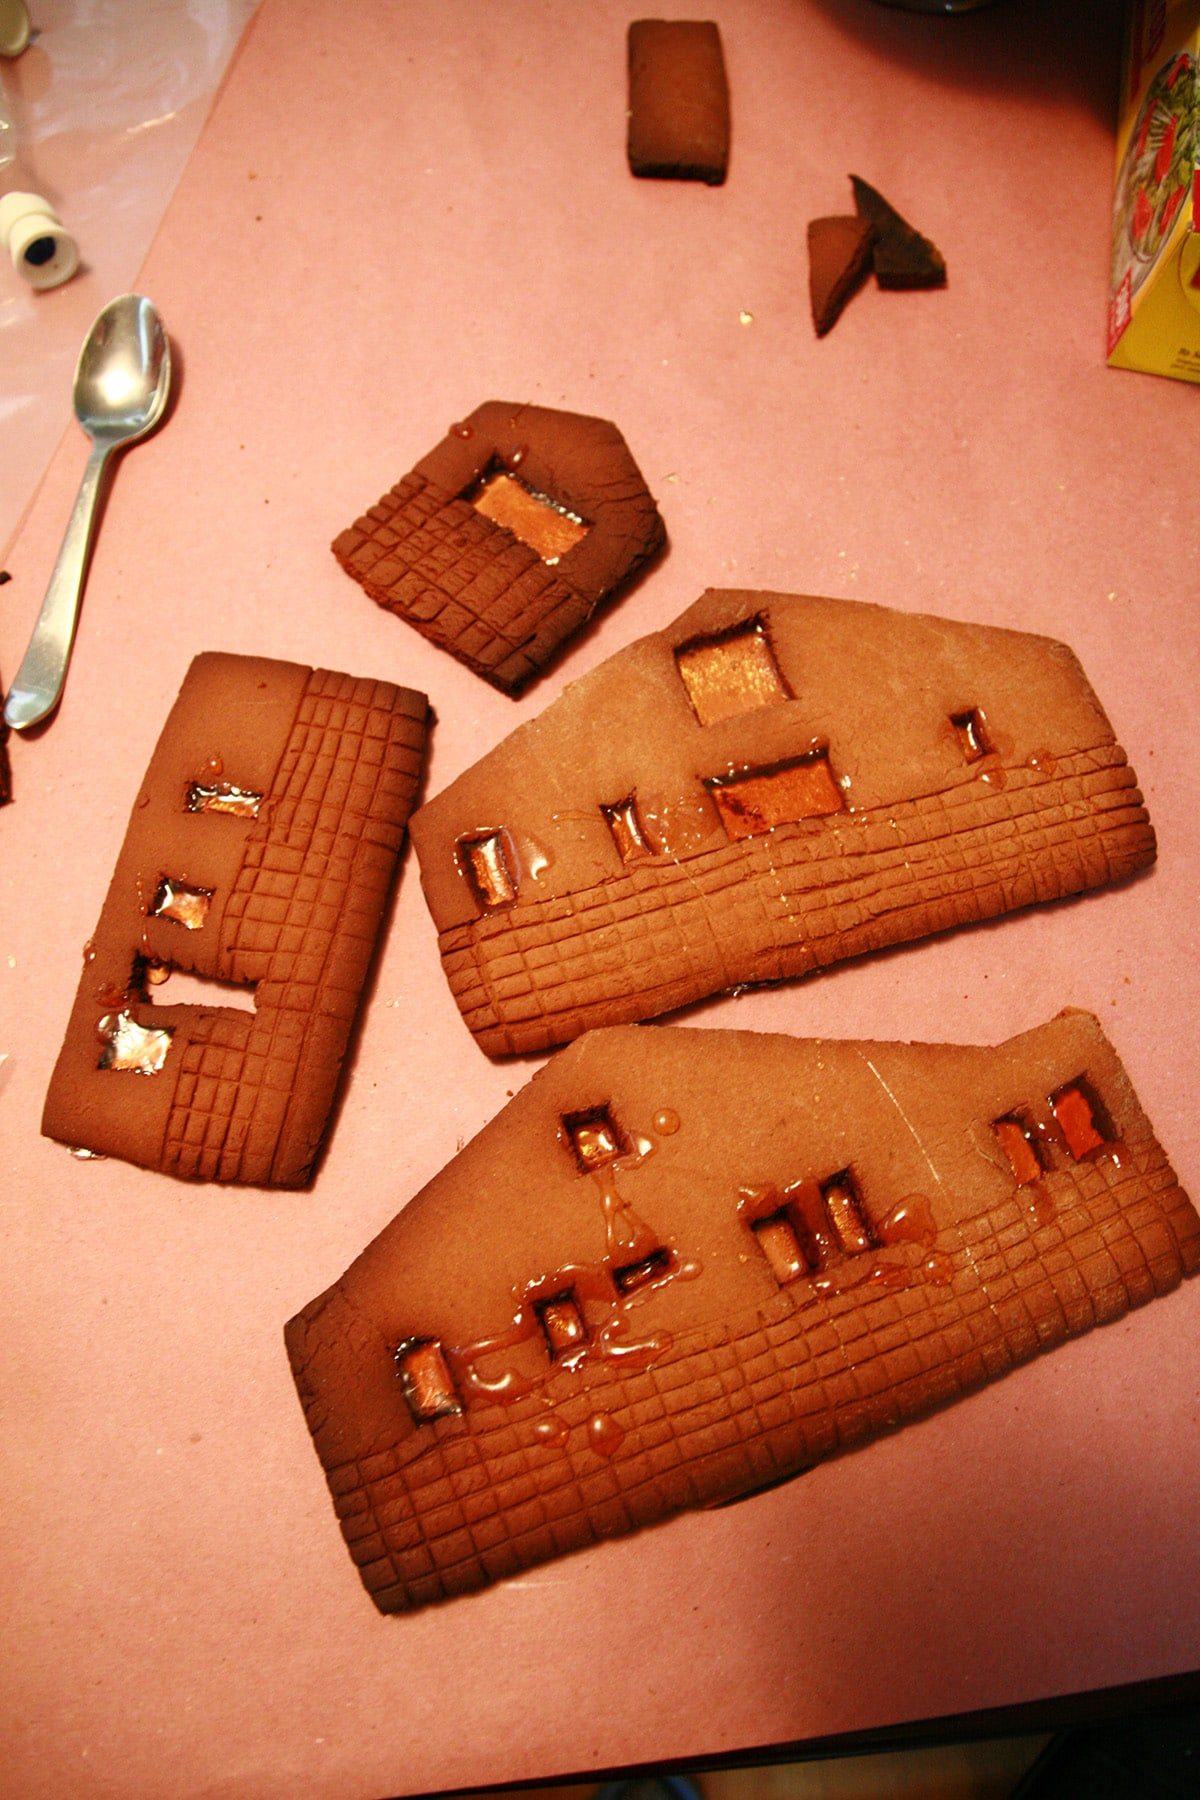 Pieces of an undecorated gingerbread house.